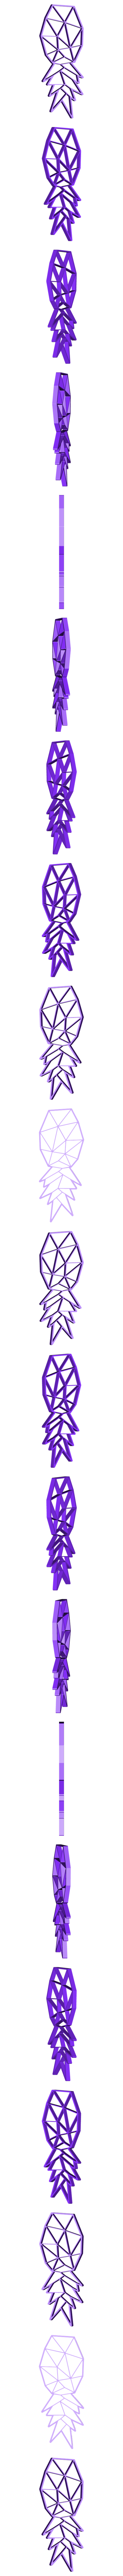 customized_origami_pineapple.stl Download free STL file Customizable Origami Pineapple • 3D printable design, MightyNozzle